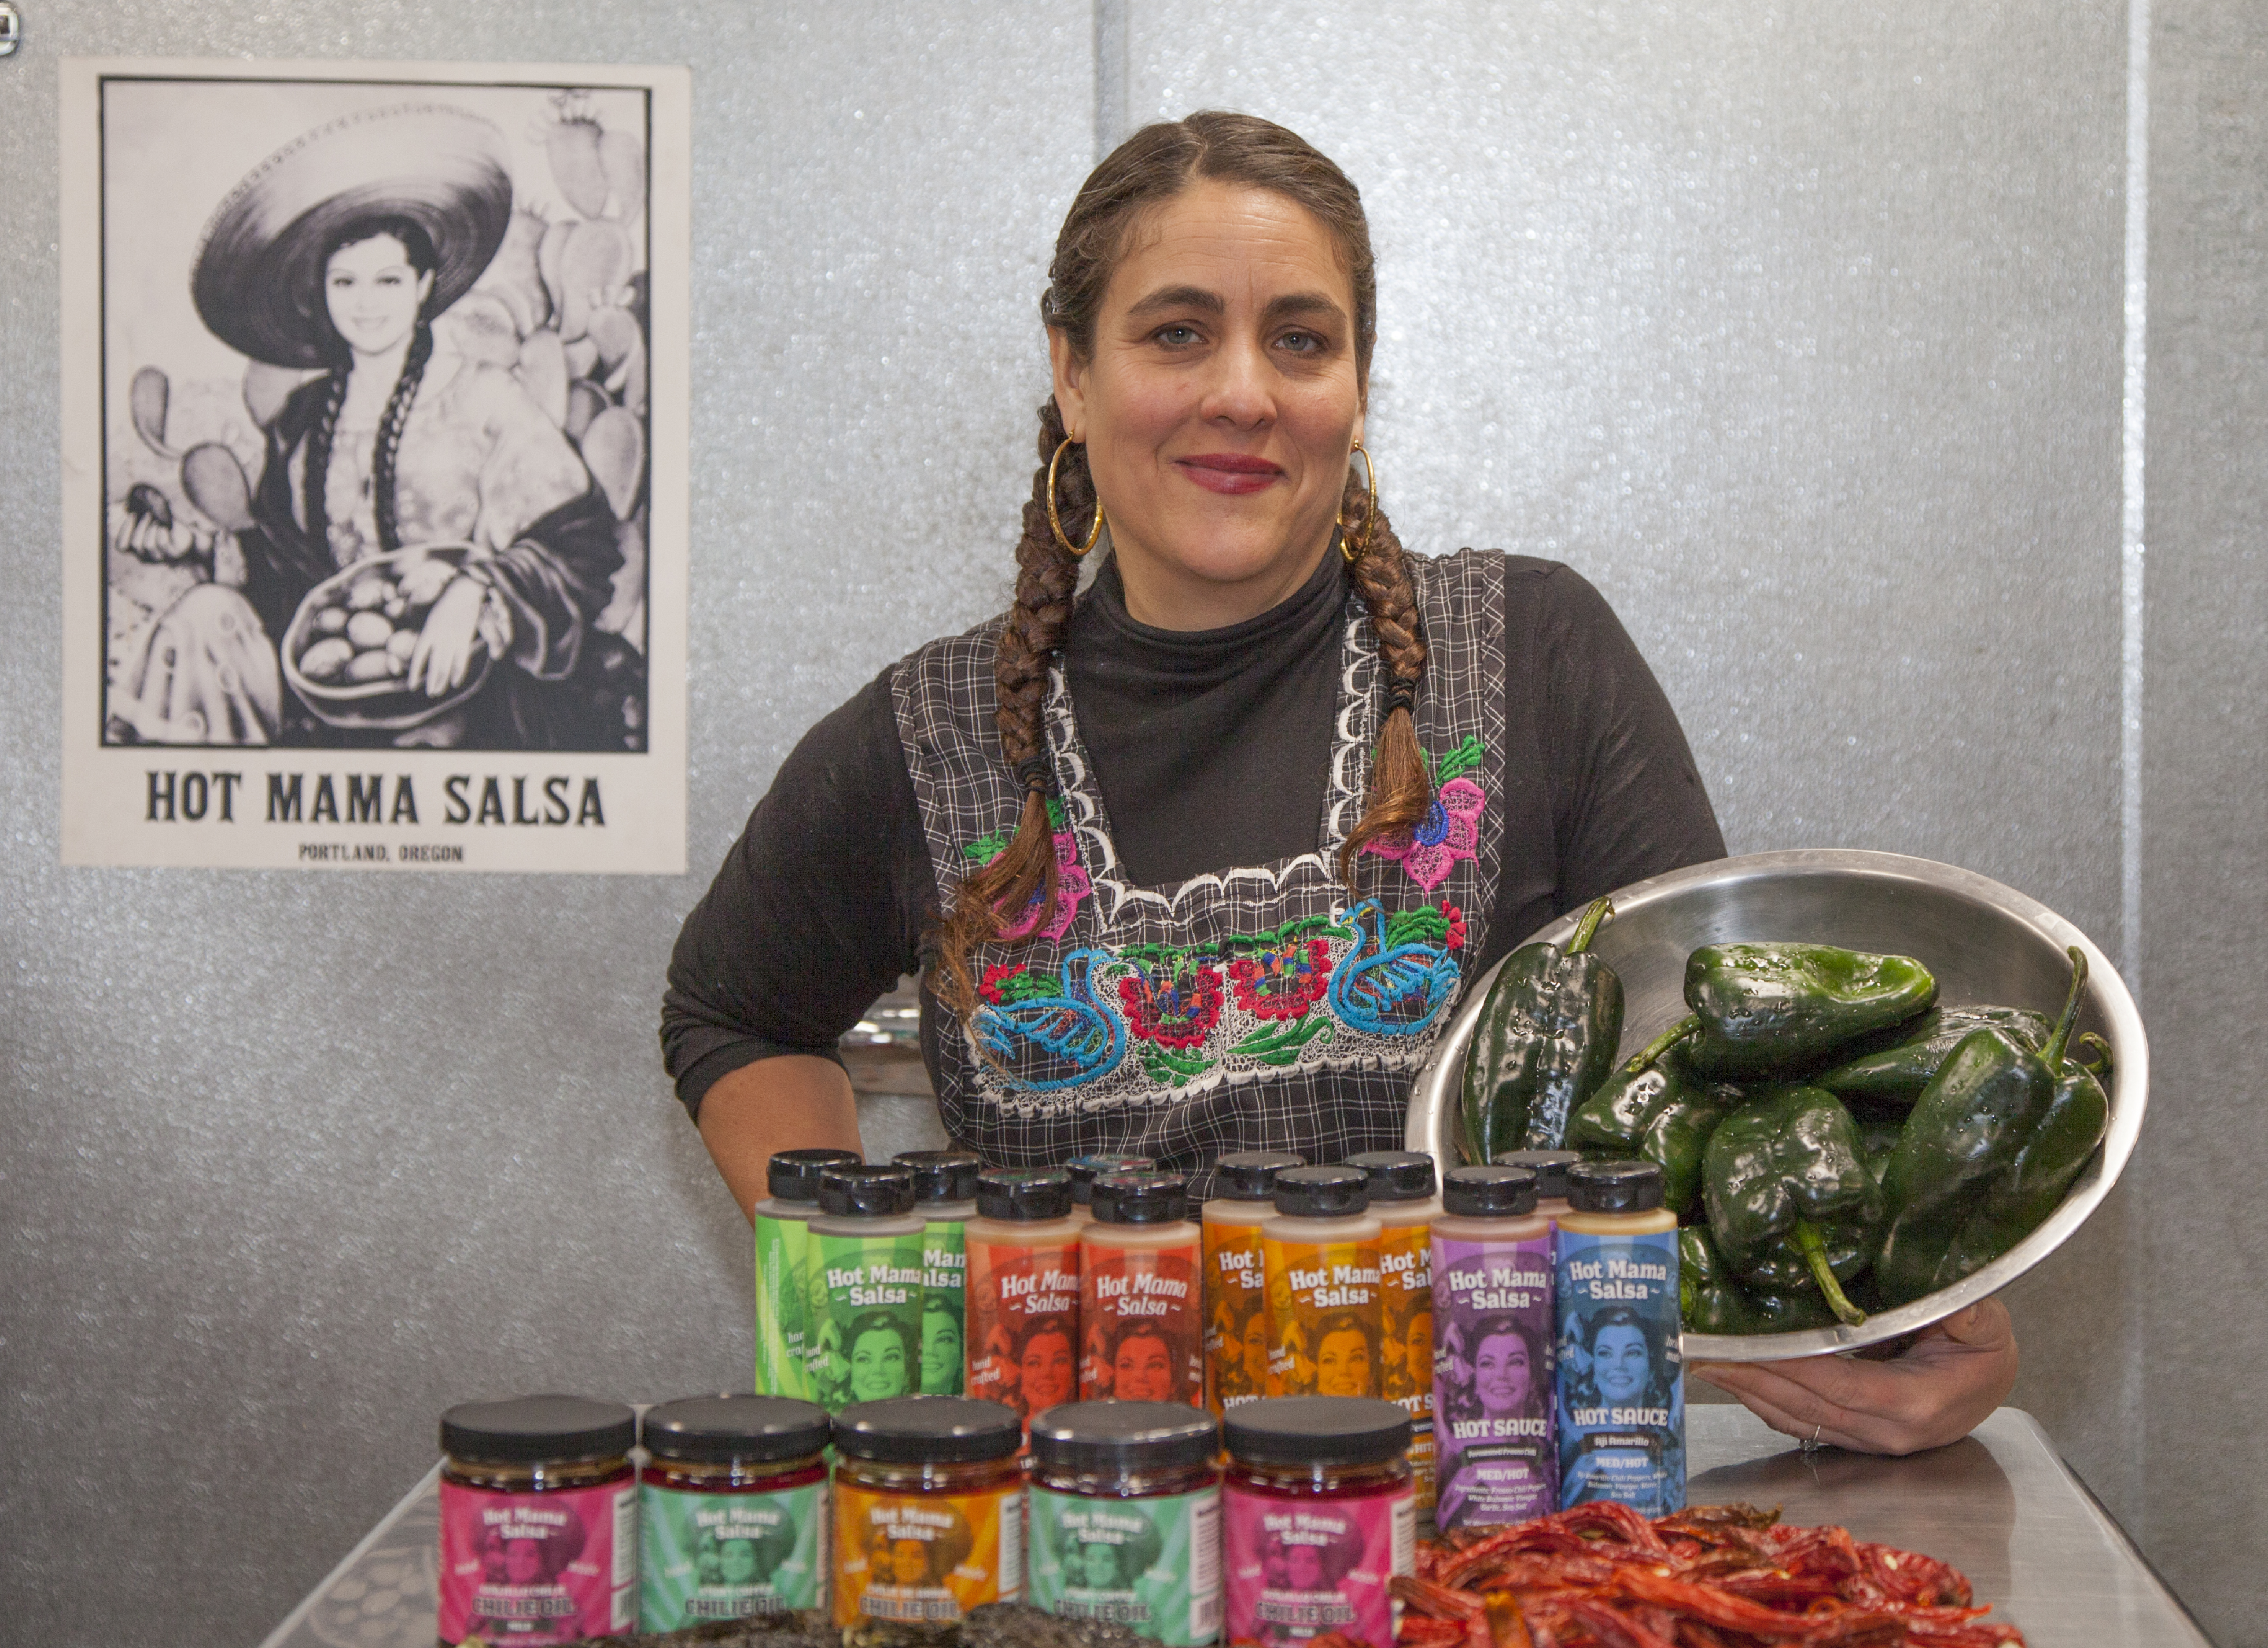 Hot Mama Salsa, Maker 282cr